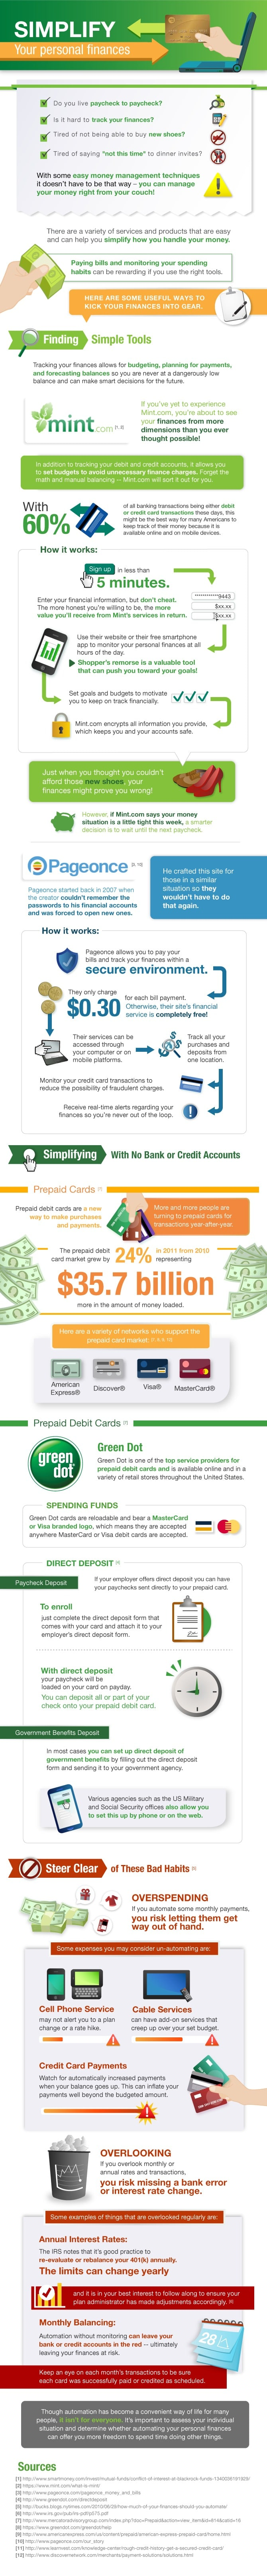 Tackle Debt With Tech In 2013 [Infographic]